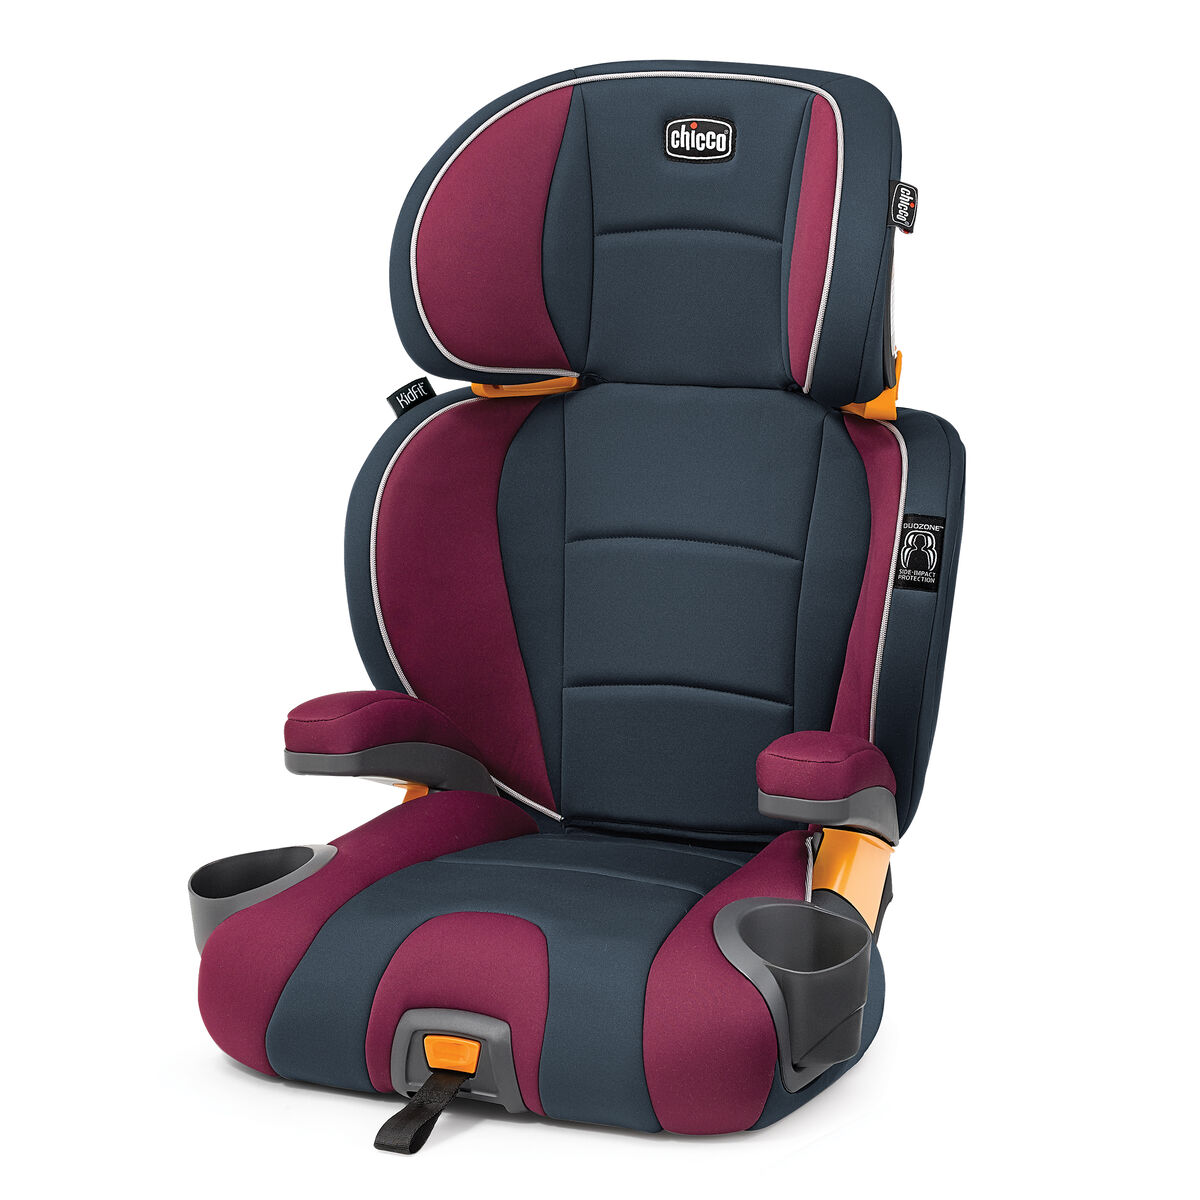 Kidfit 2 in 1 belt positioning booster car seat amethystkidfit 2 in 1 belt positioning booster car seat amethyst